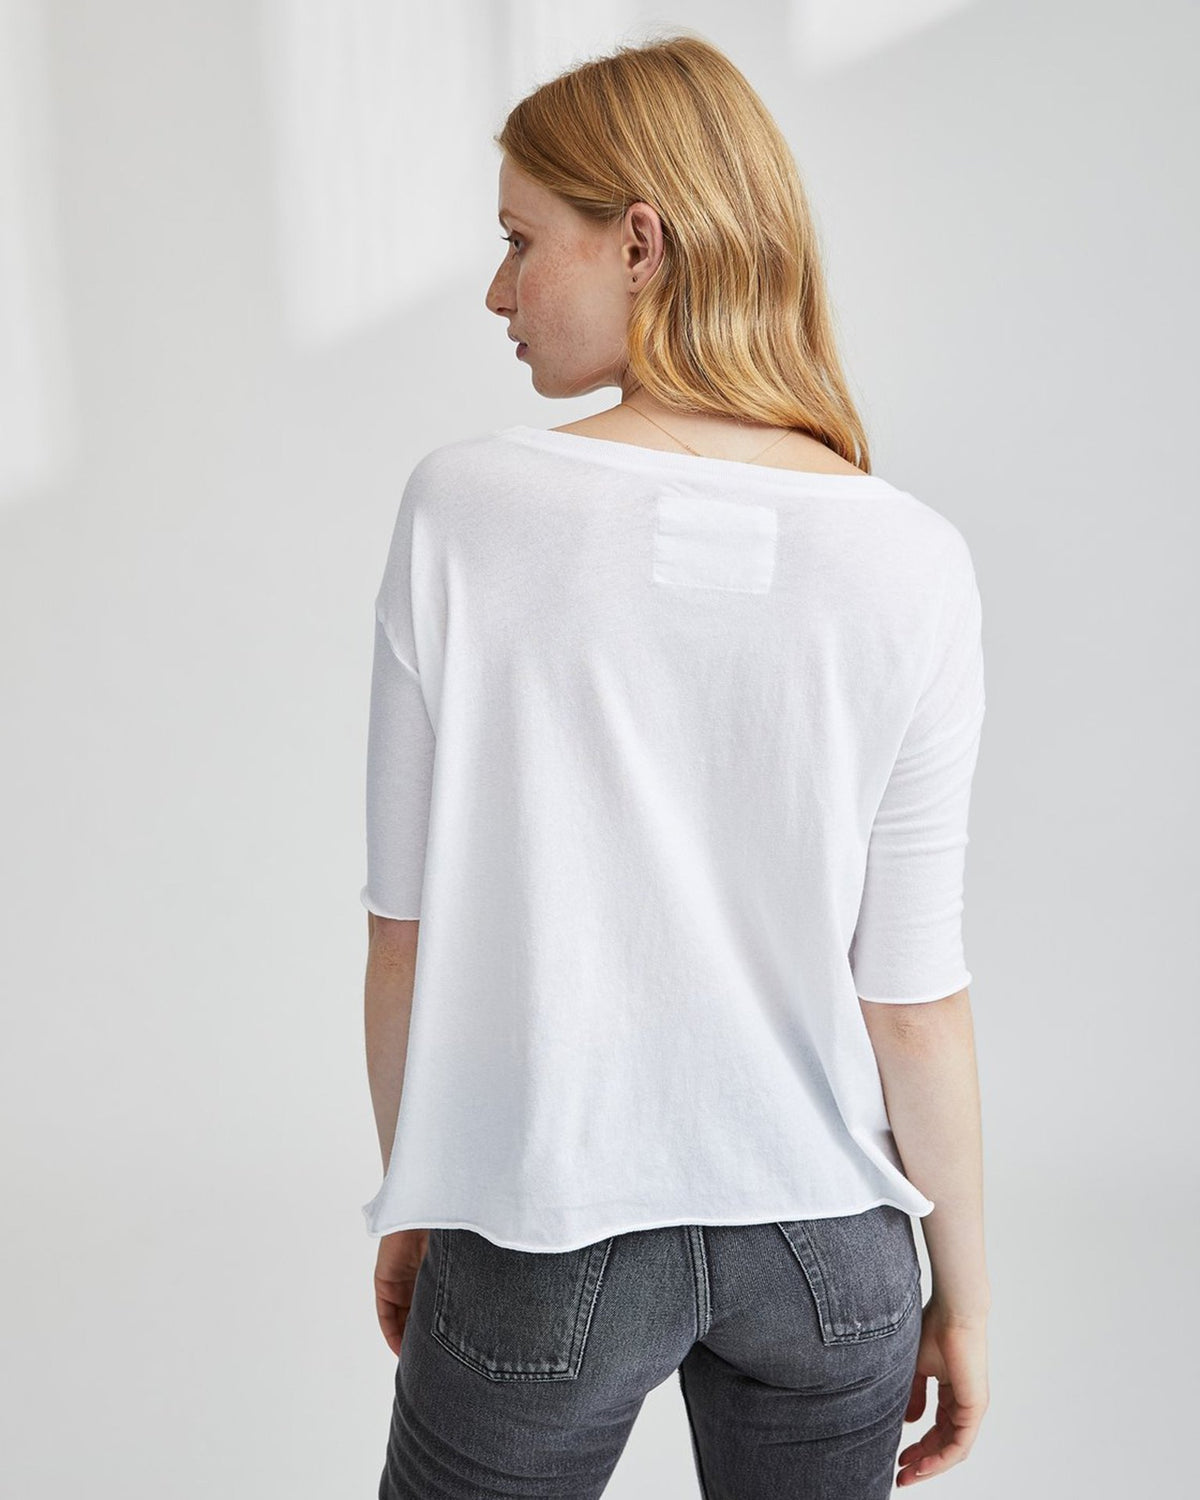 Tee Lab Clothing Essential Jersey Core Tee in White